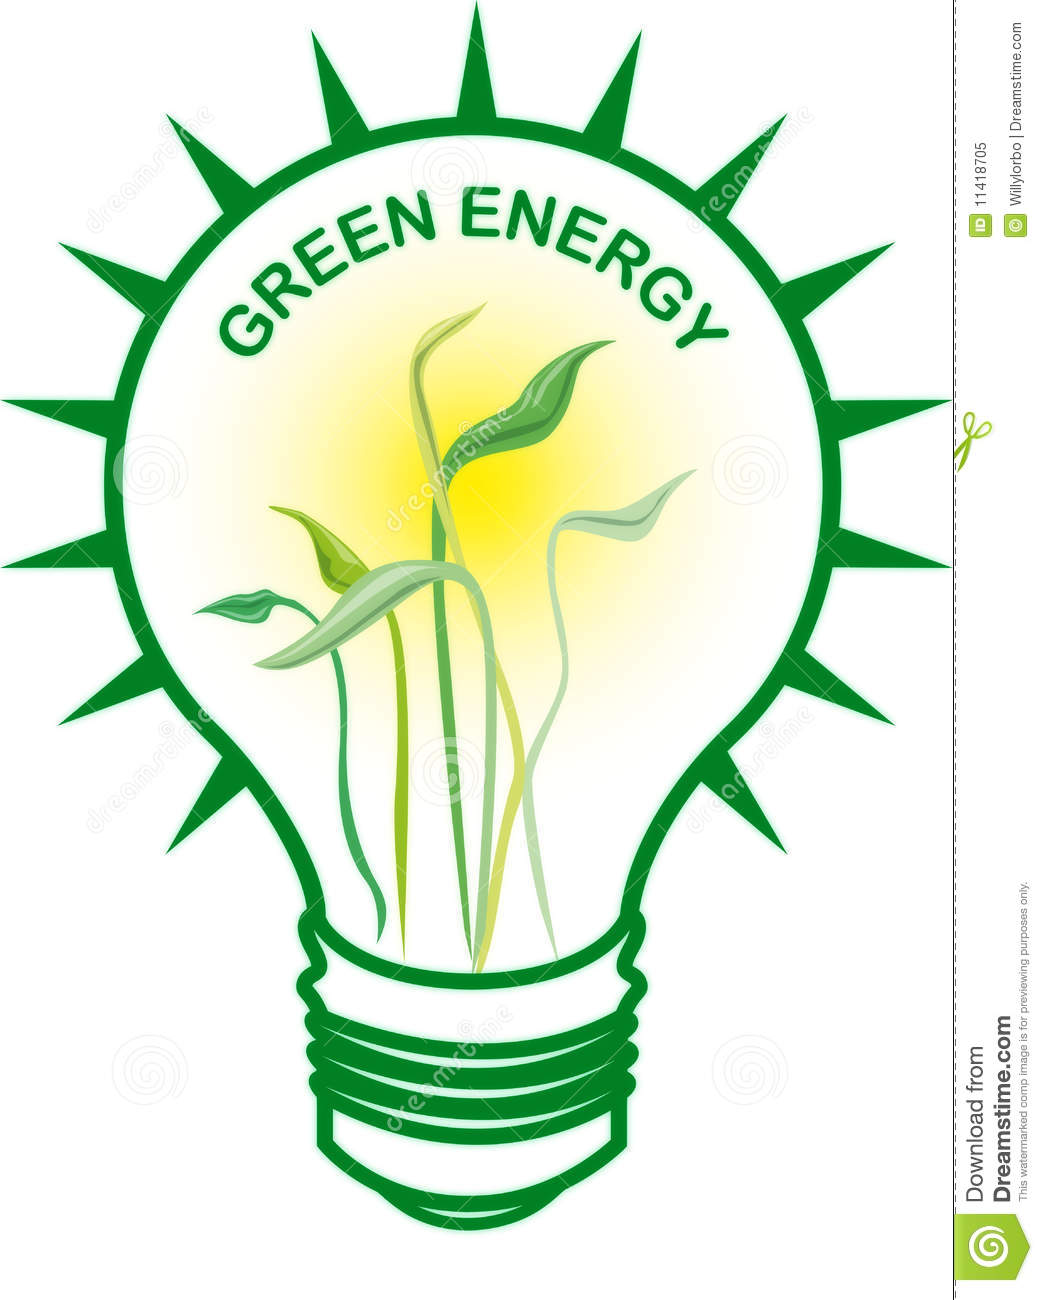 Green Energy Bulb Royalty Free Stock Photo - Image: 11418705